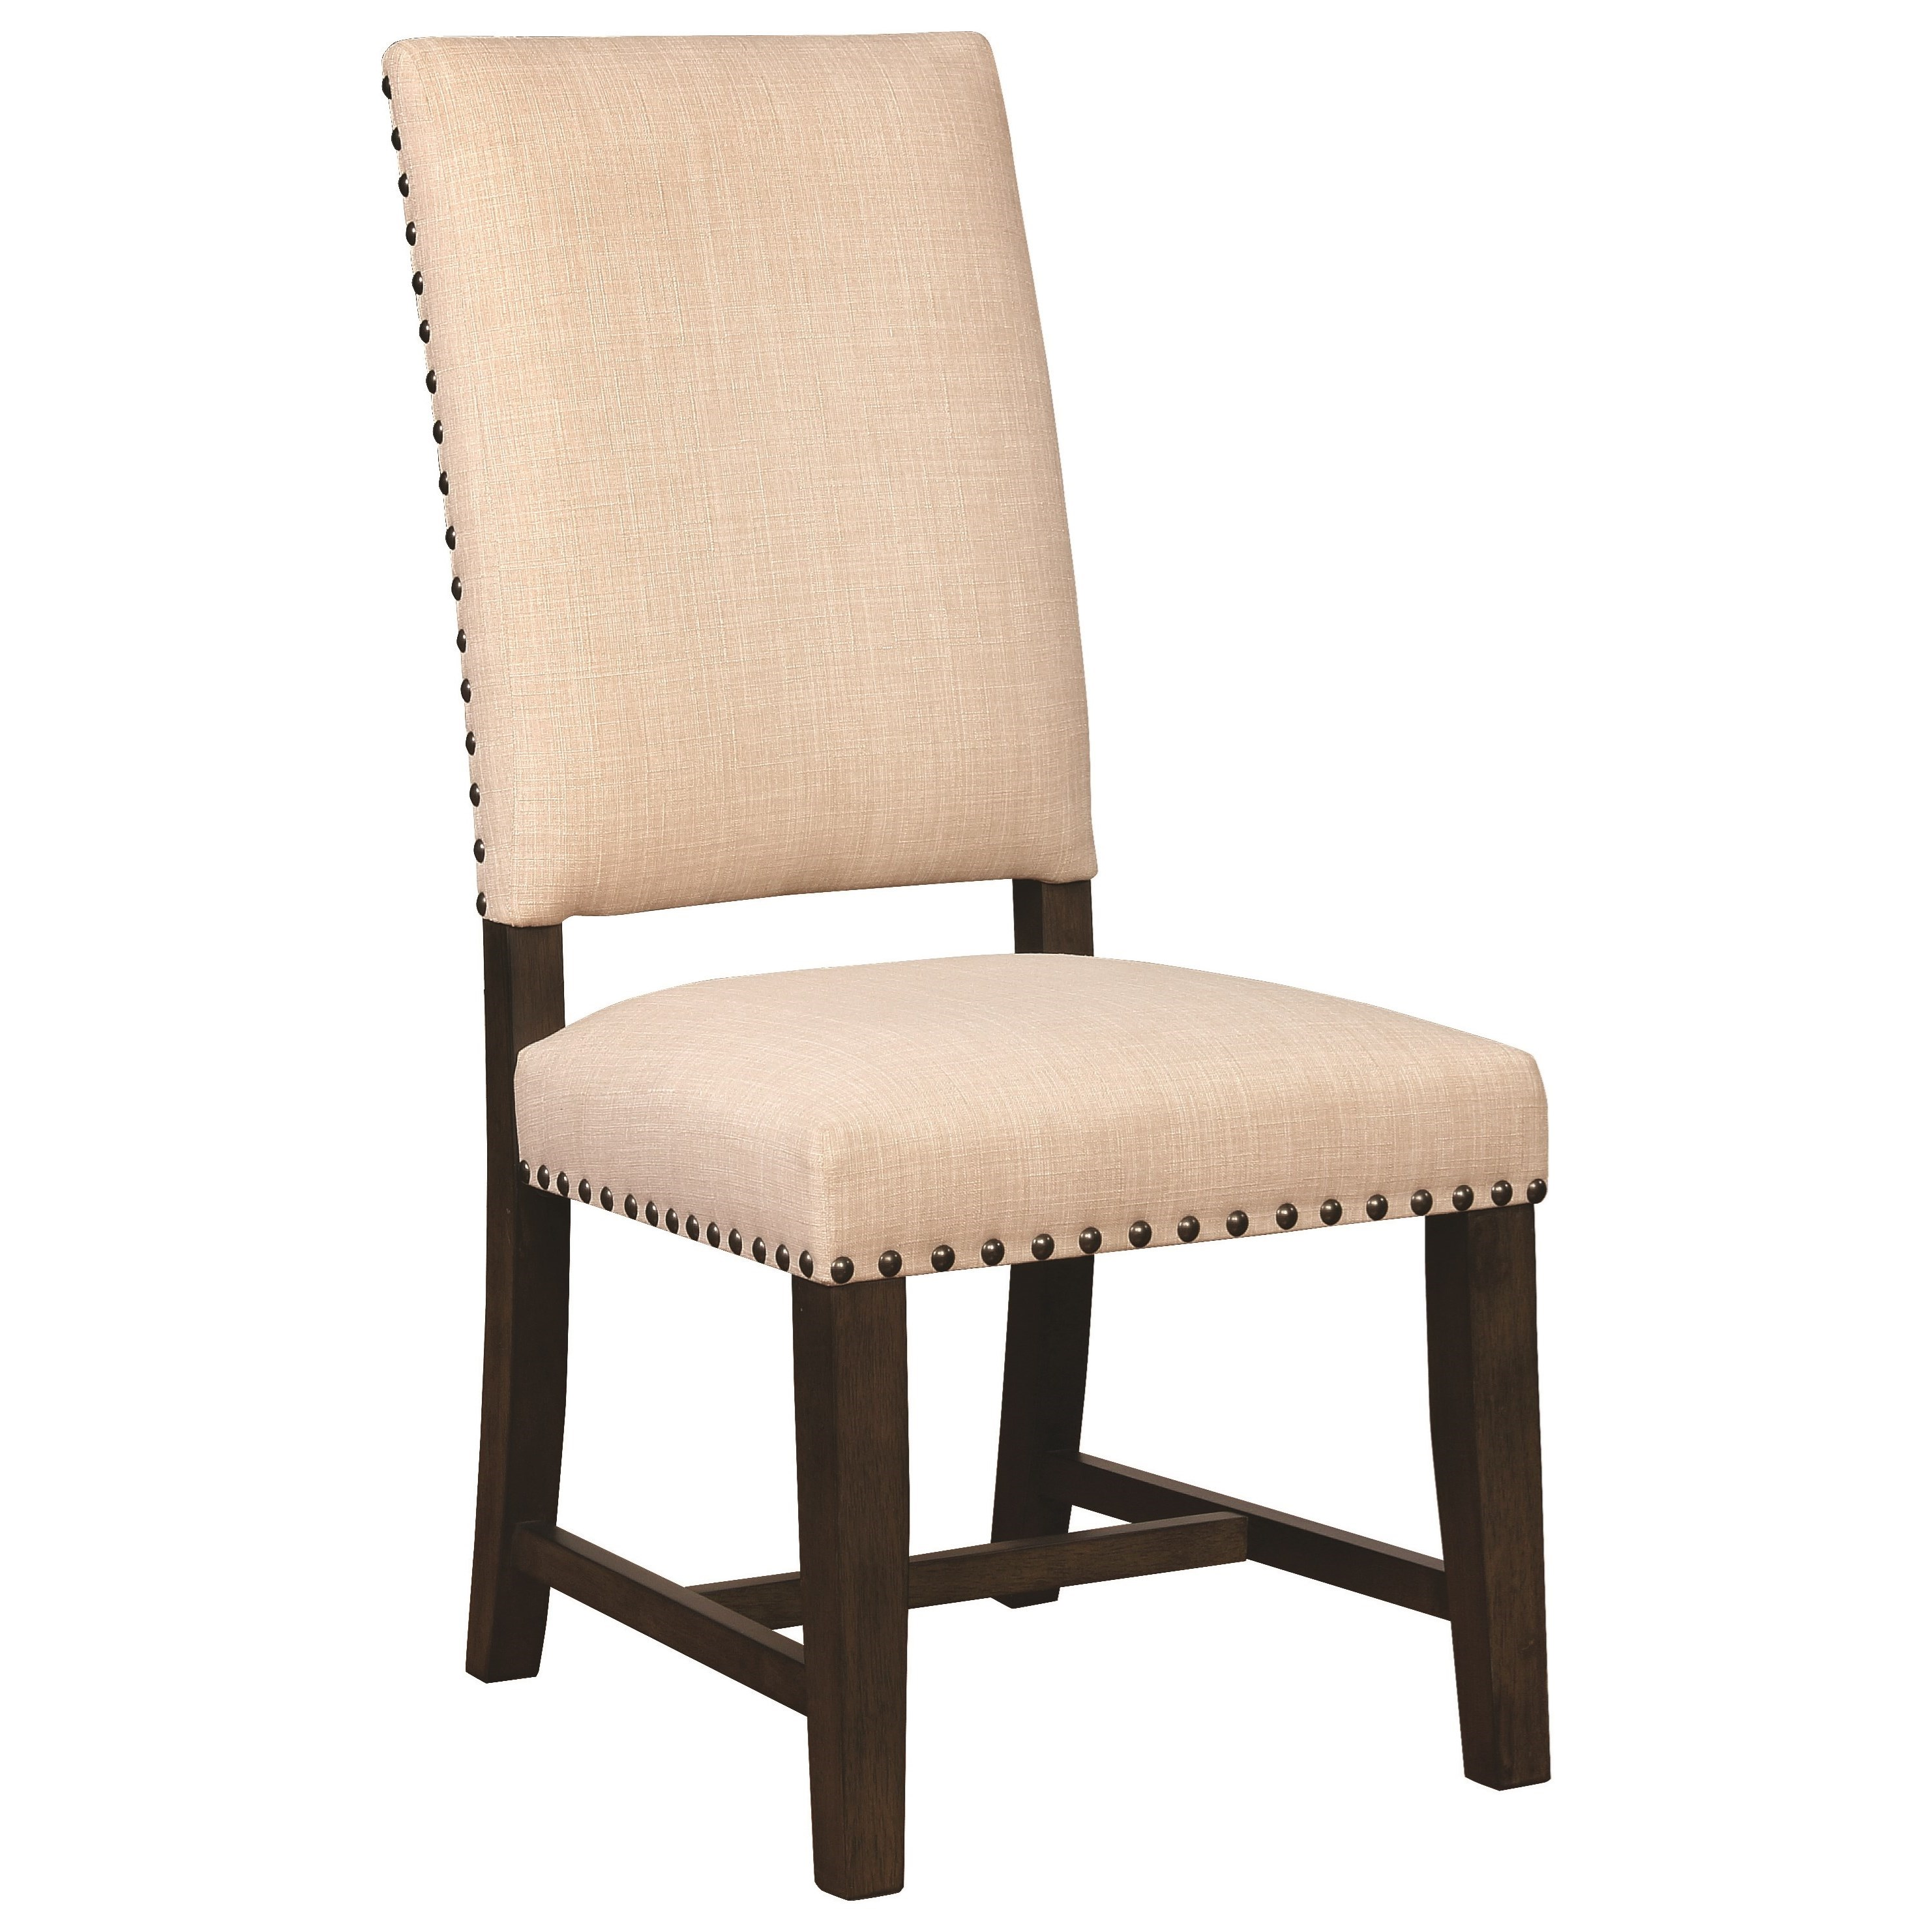 Scott Living 1028 Parson Chair - Item Number: 102820